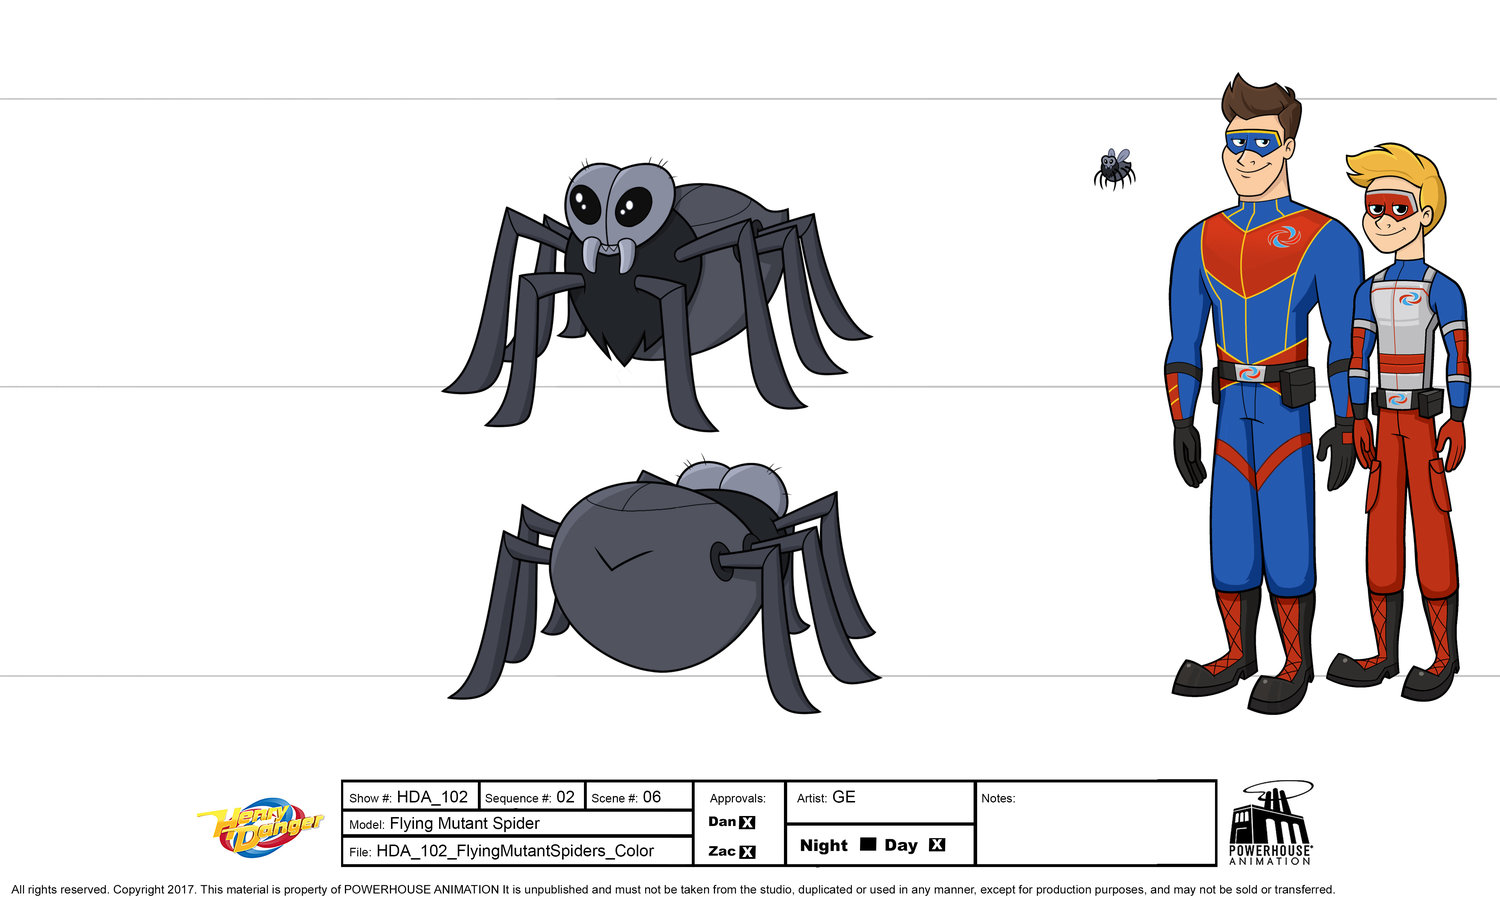 HDA_102_FlyingMutantSpiders_Color.jpg